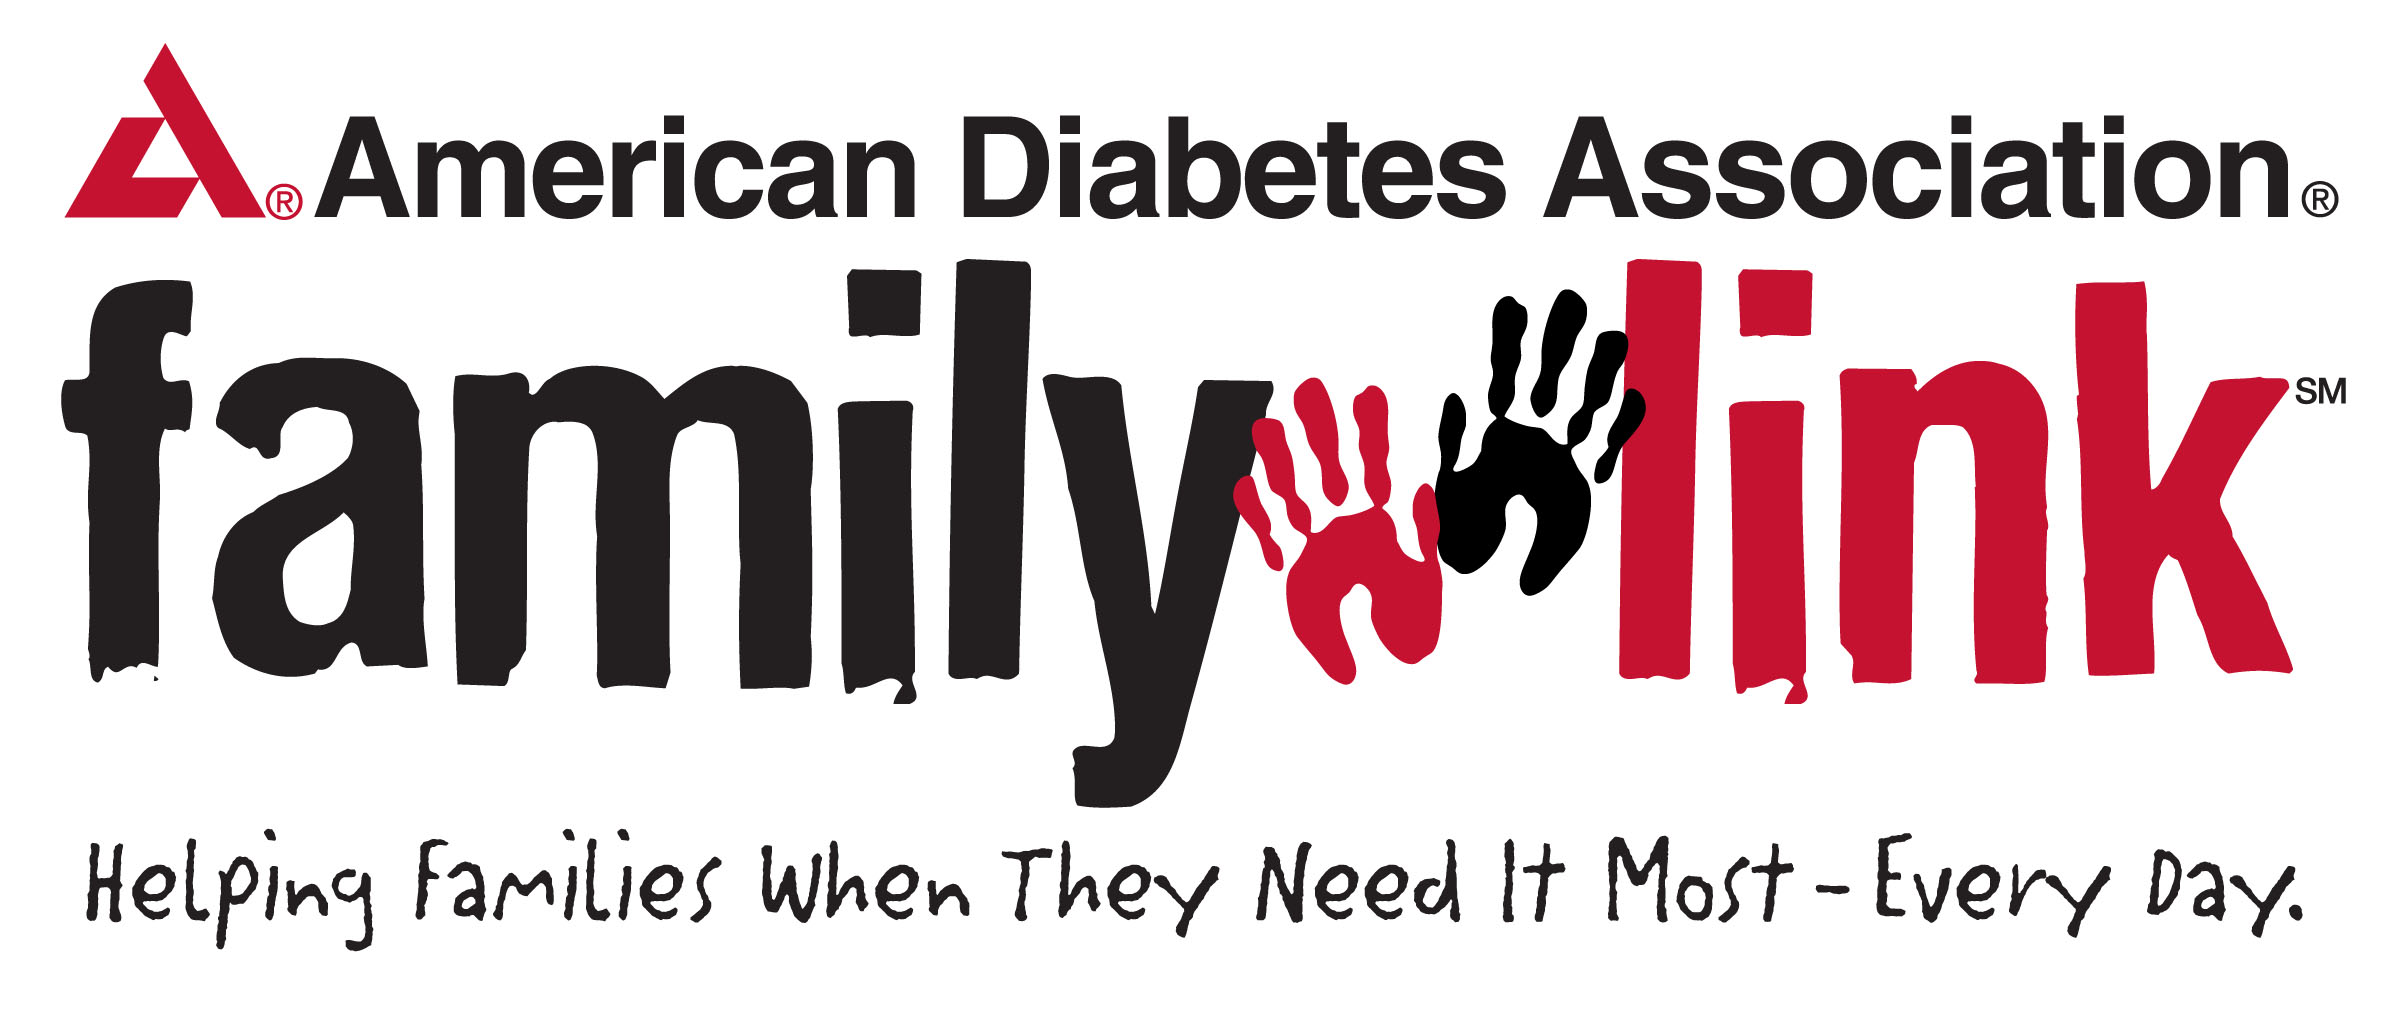 Insulin and american diabetes association